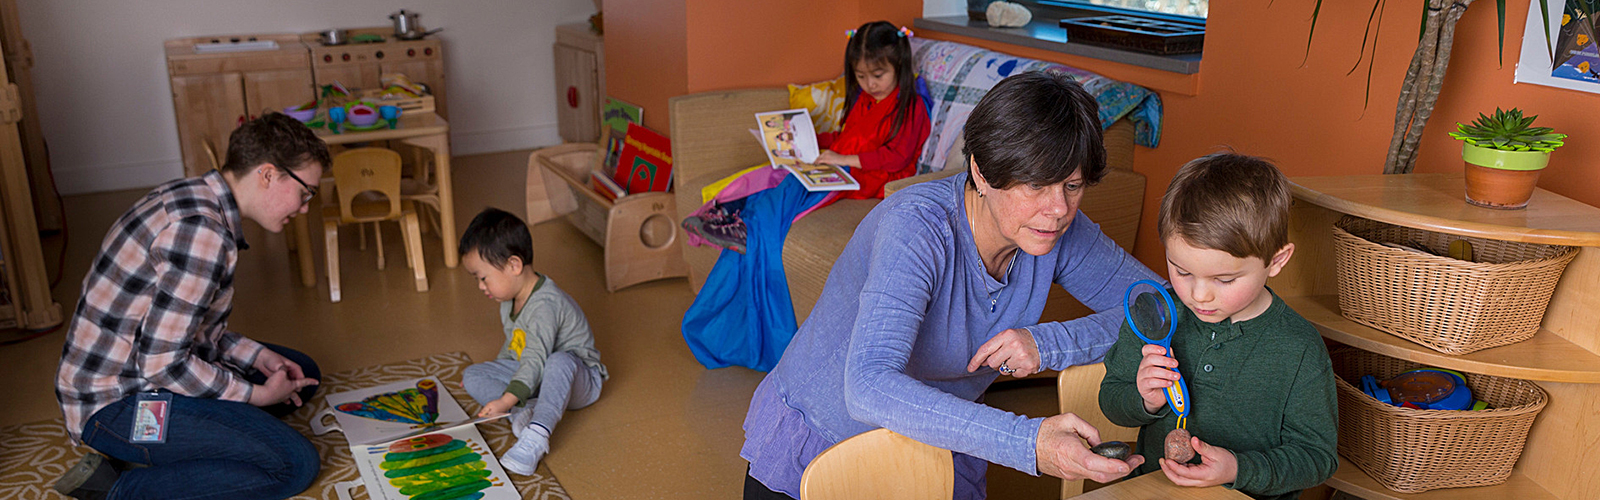 Adult reading with small child on the left. Young child reading in the background. Adult looking at objects with a magnifying glass with another small child on the right.